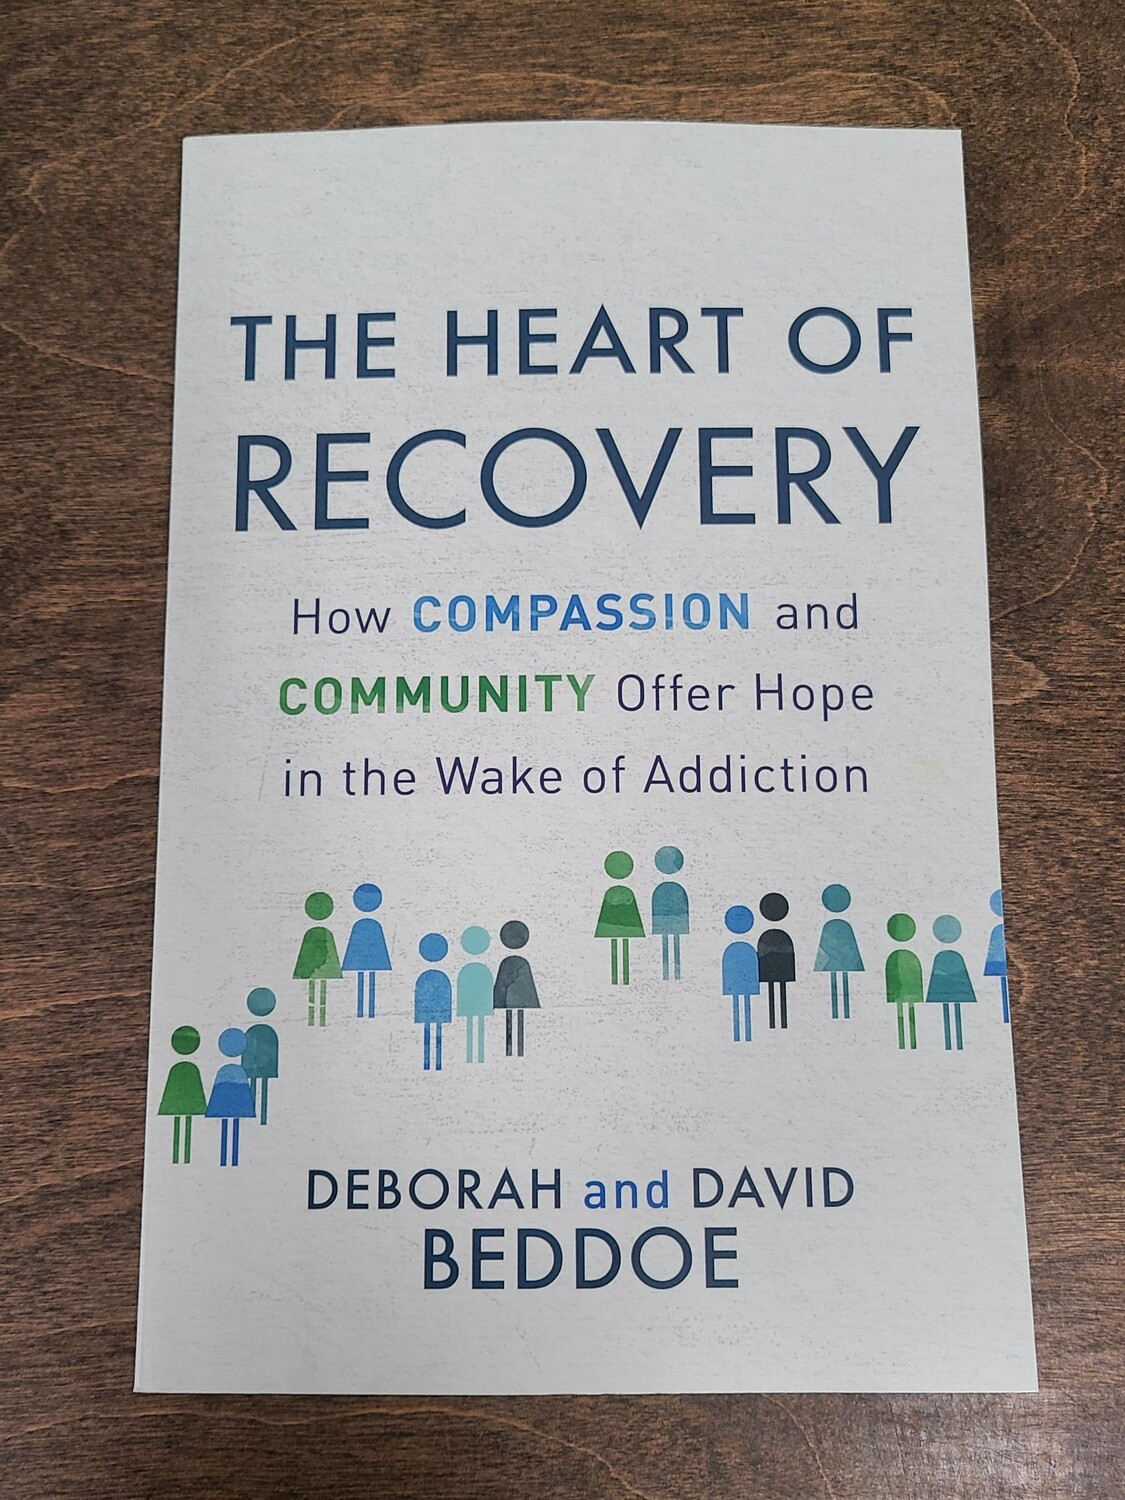 The Heart of Recovery: How Compassion and Community Offer Hope in the Wake of Addiction by Deborah and David Beddoe